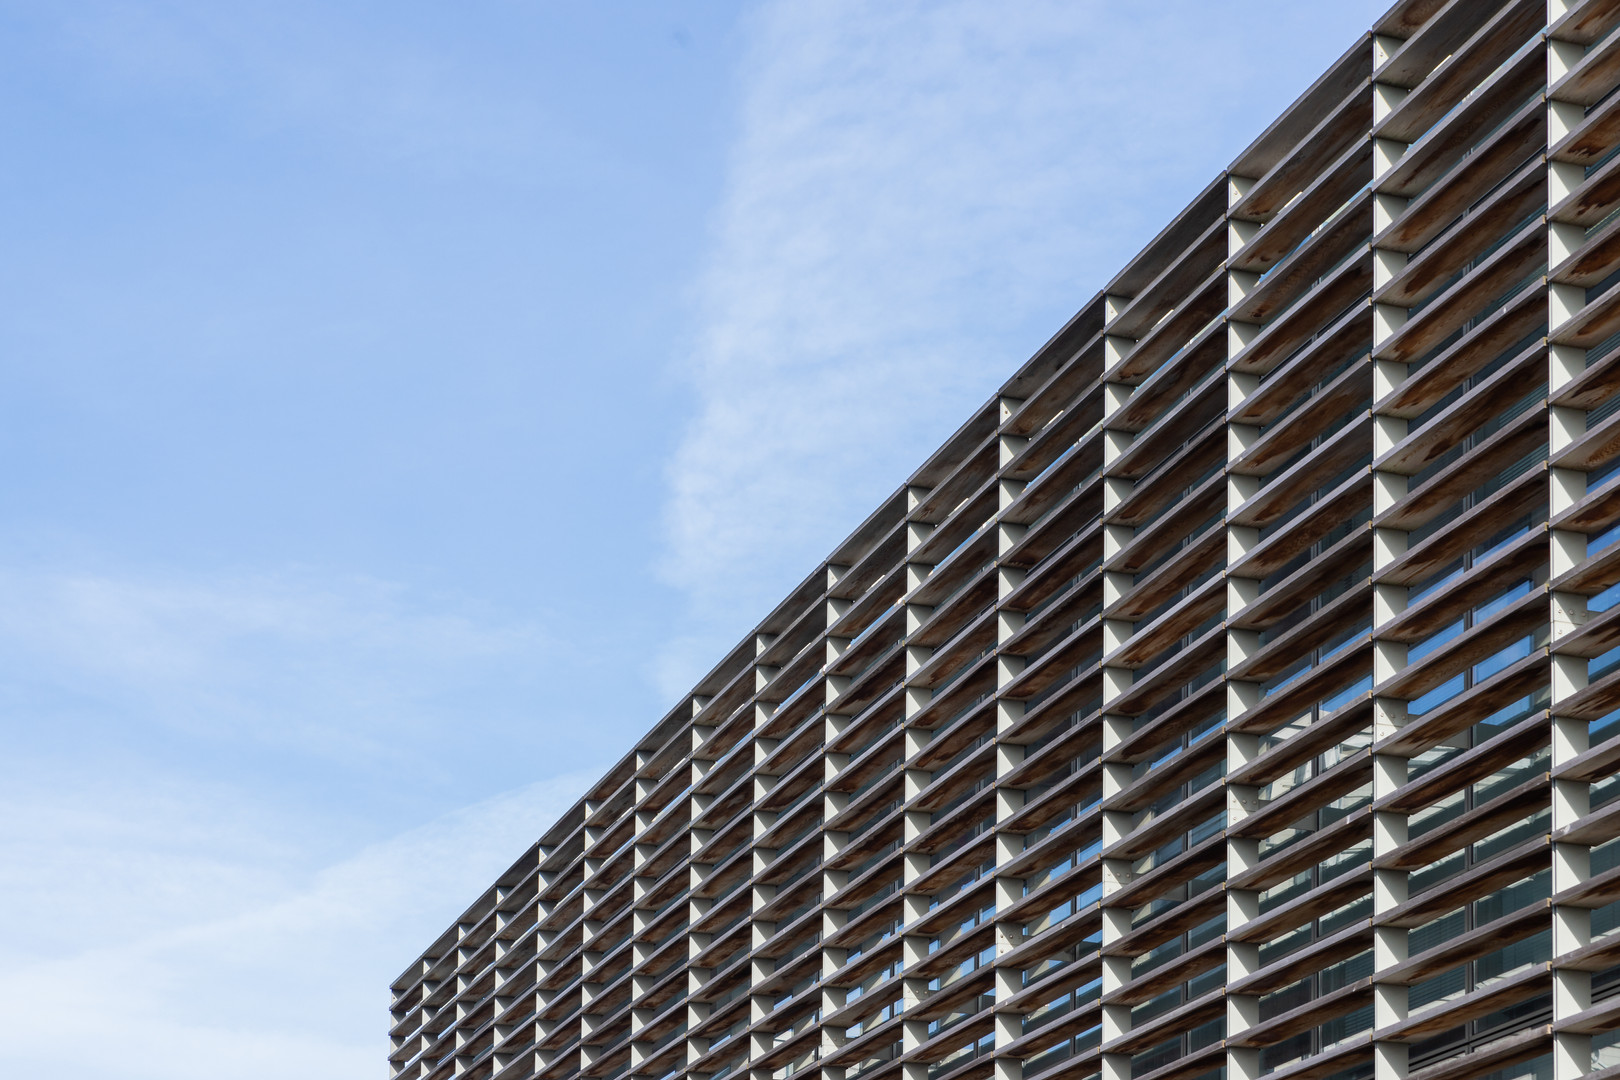 Detail of louvered facade of National Institute for Cellular Biotechnology at DCU, Dublin